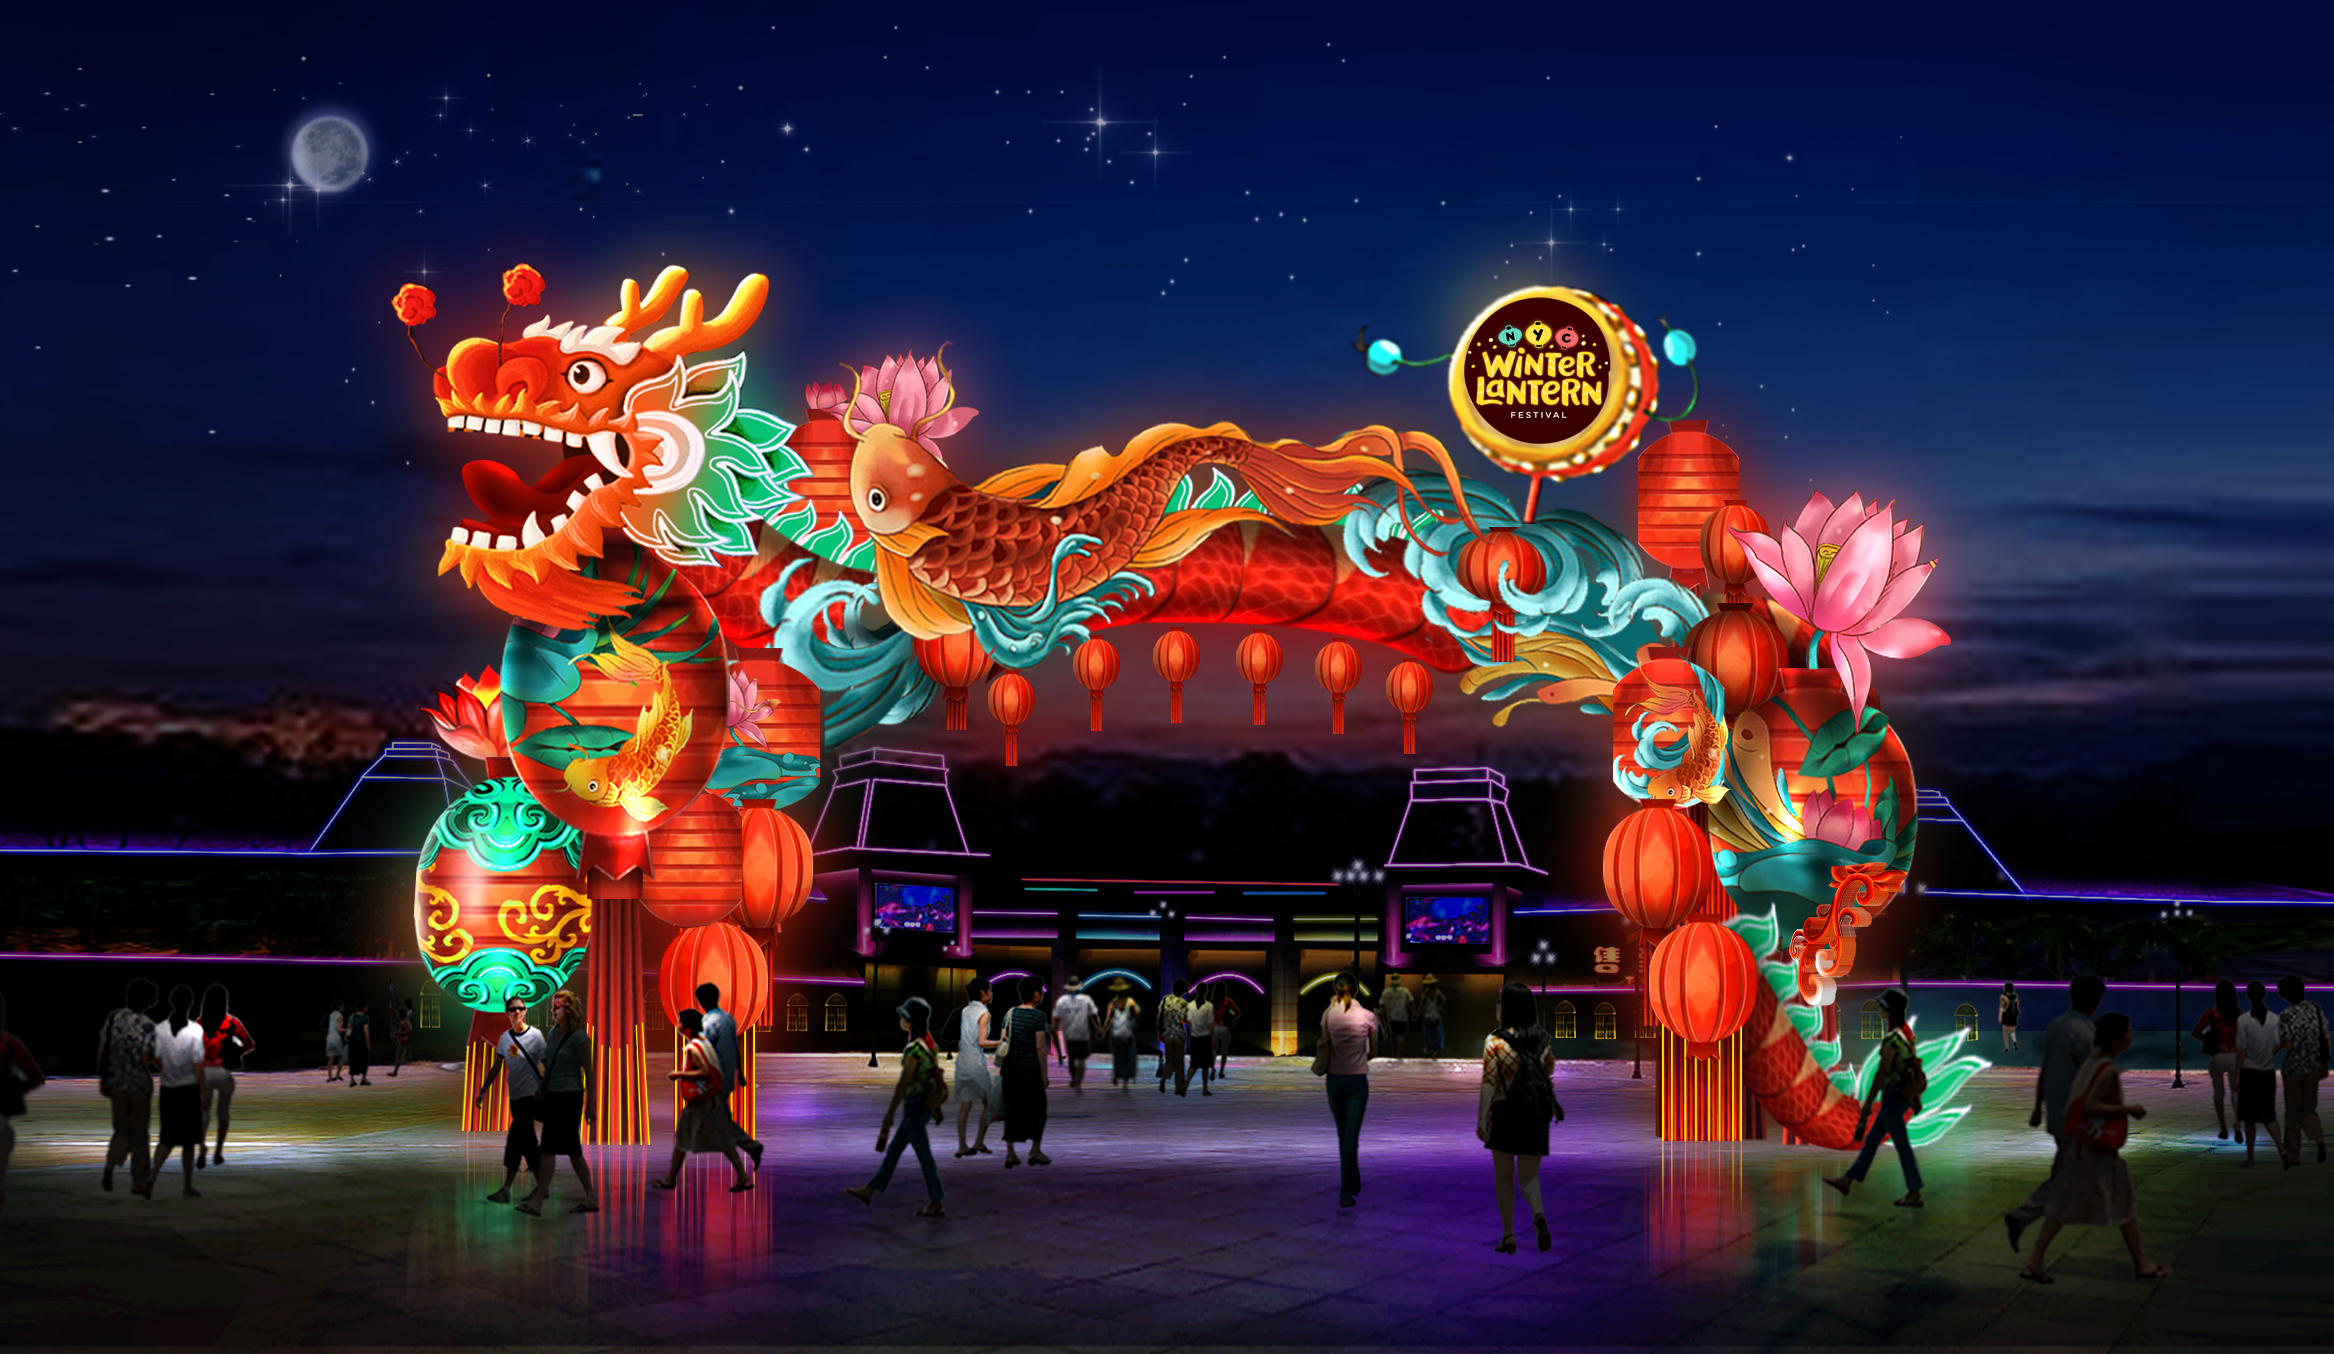 Tickets for NYC Winter Lantern Festival in Staten Island